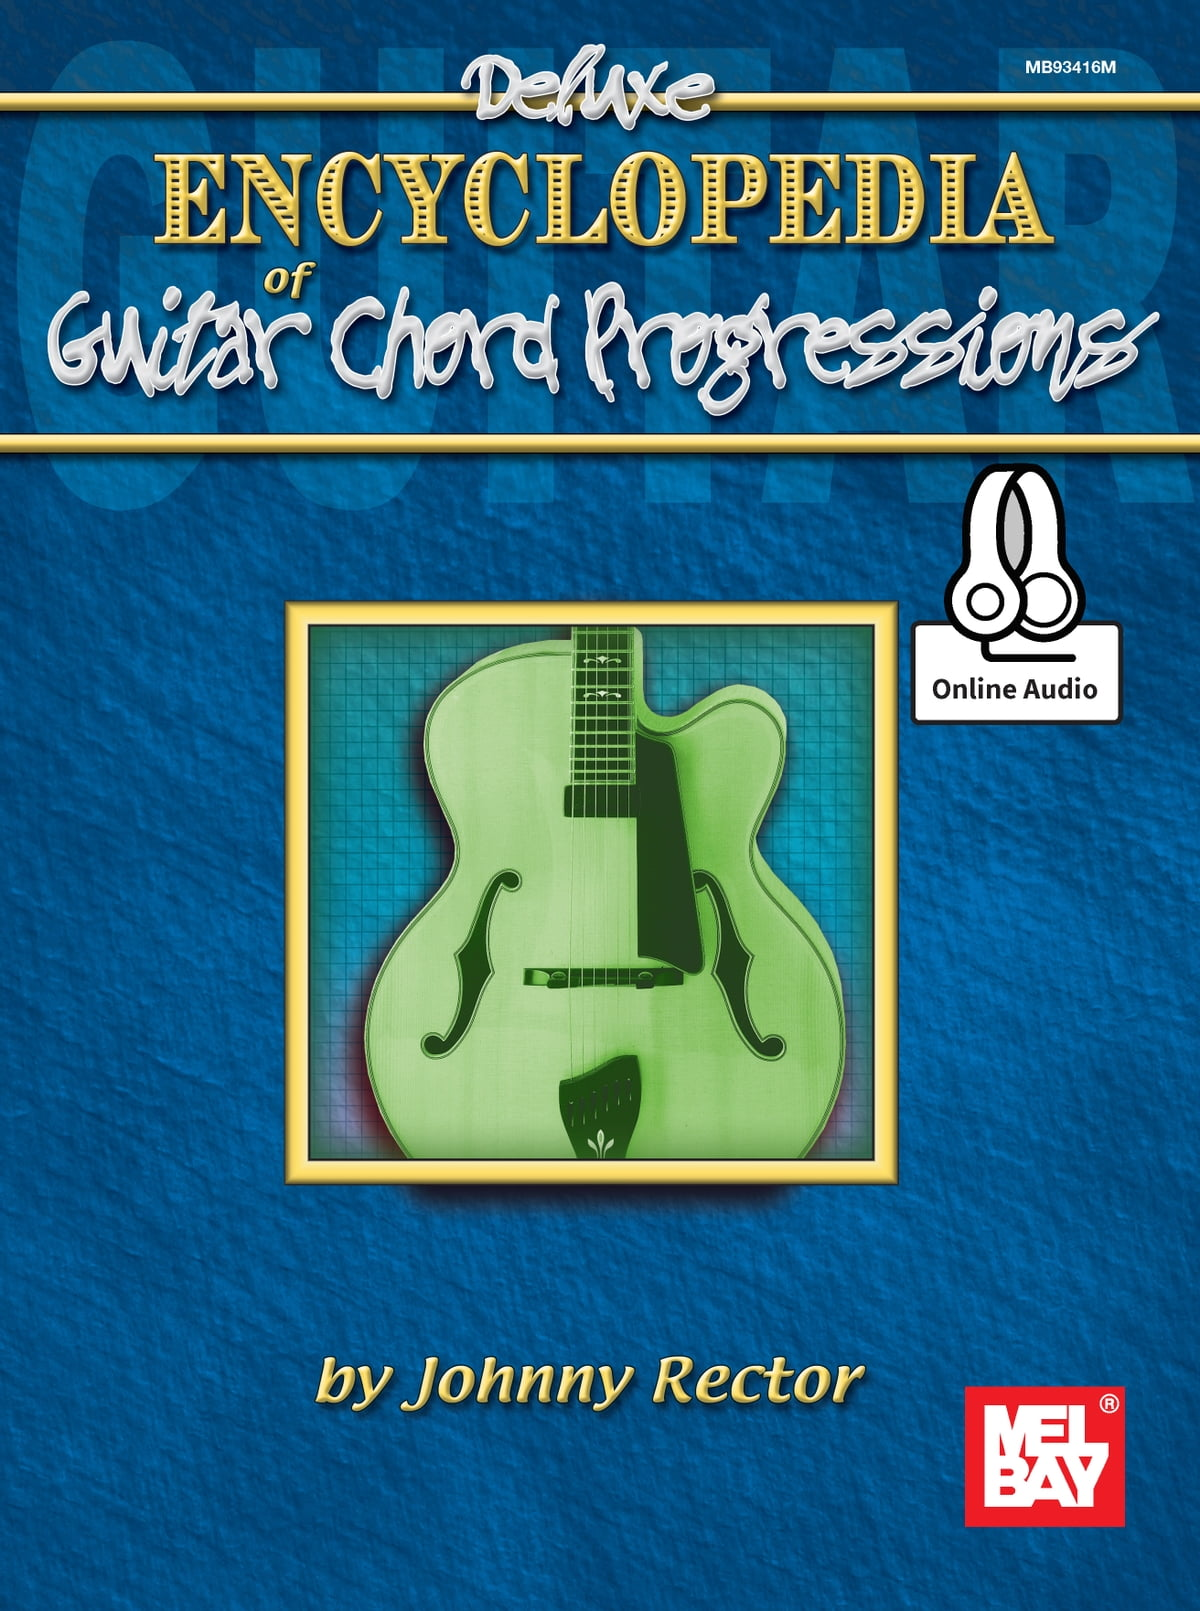 Deluxe Encyclopedia Of Guitar Chord Progressions Ebook By Johnny